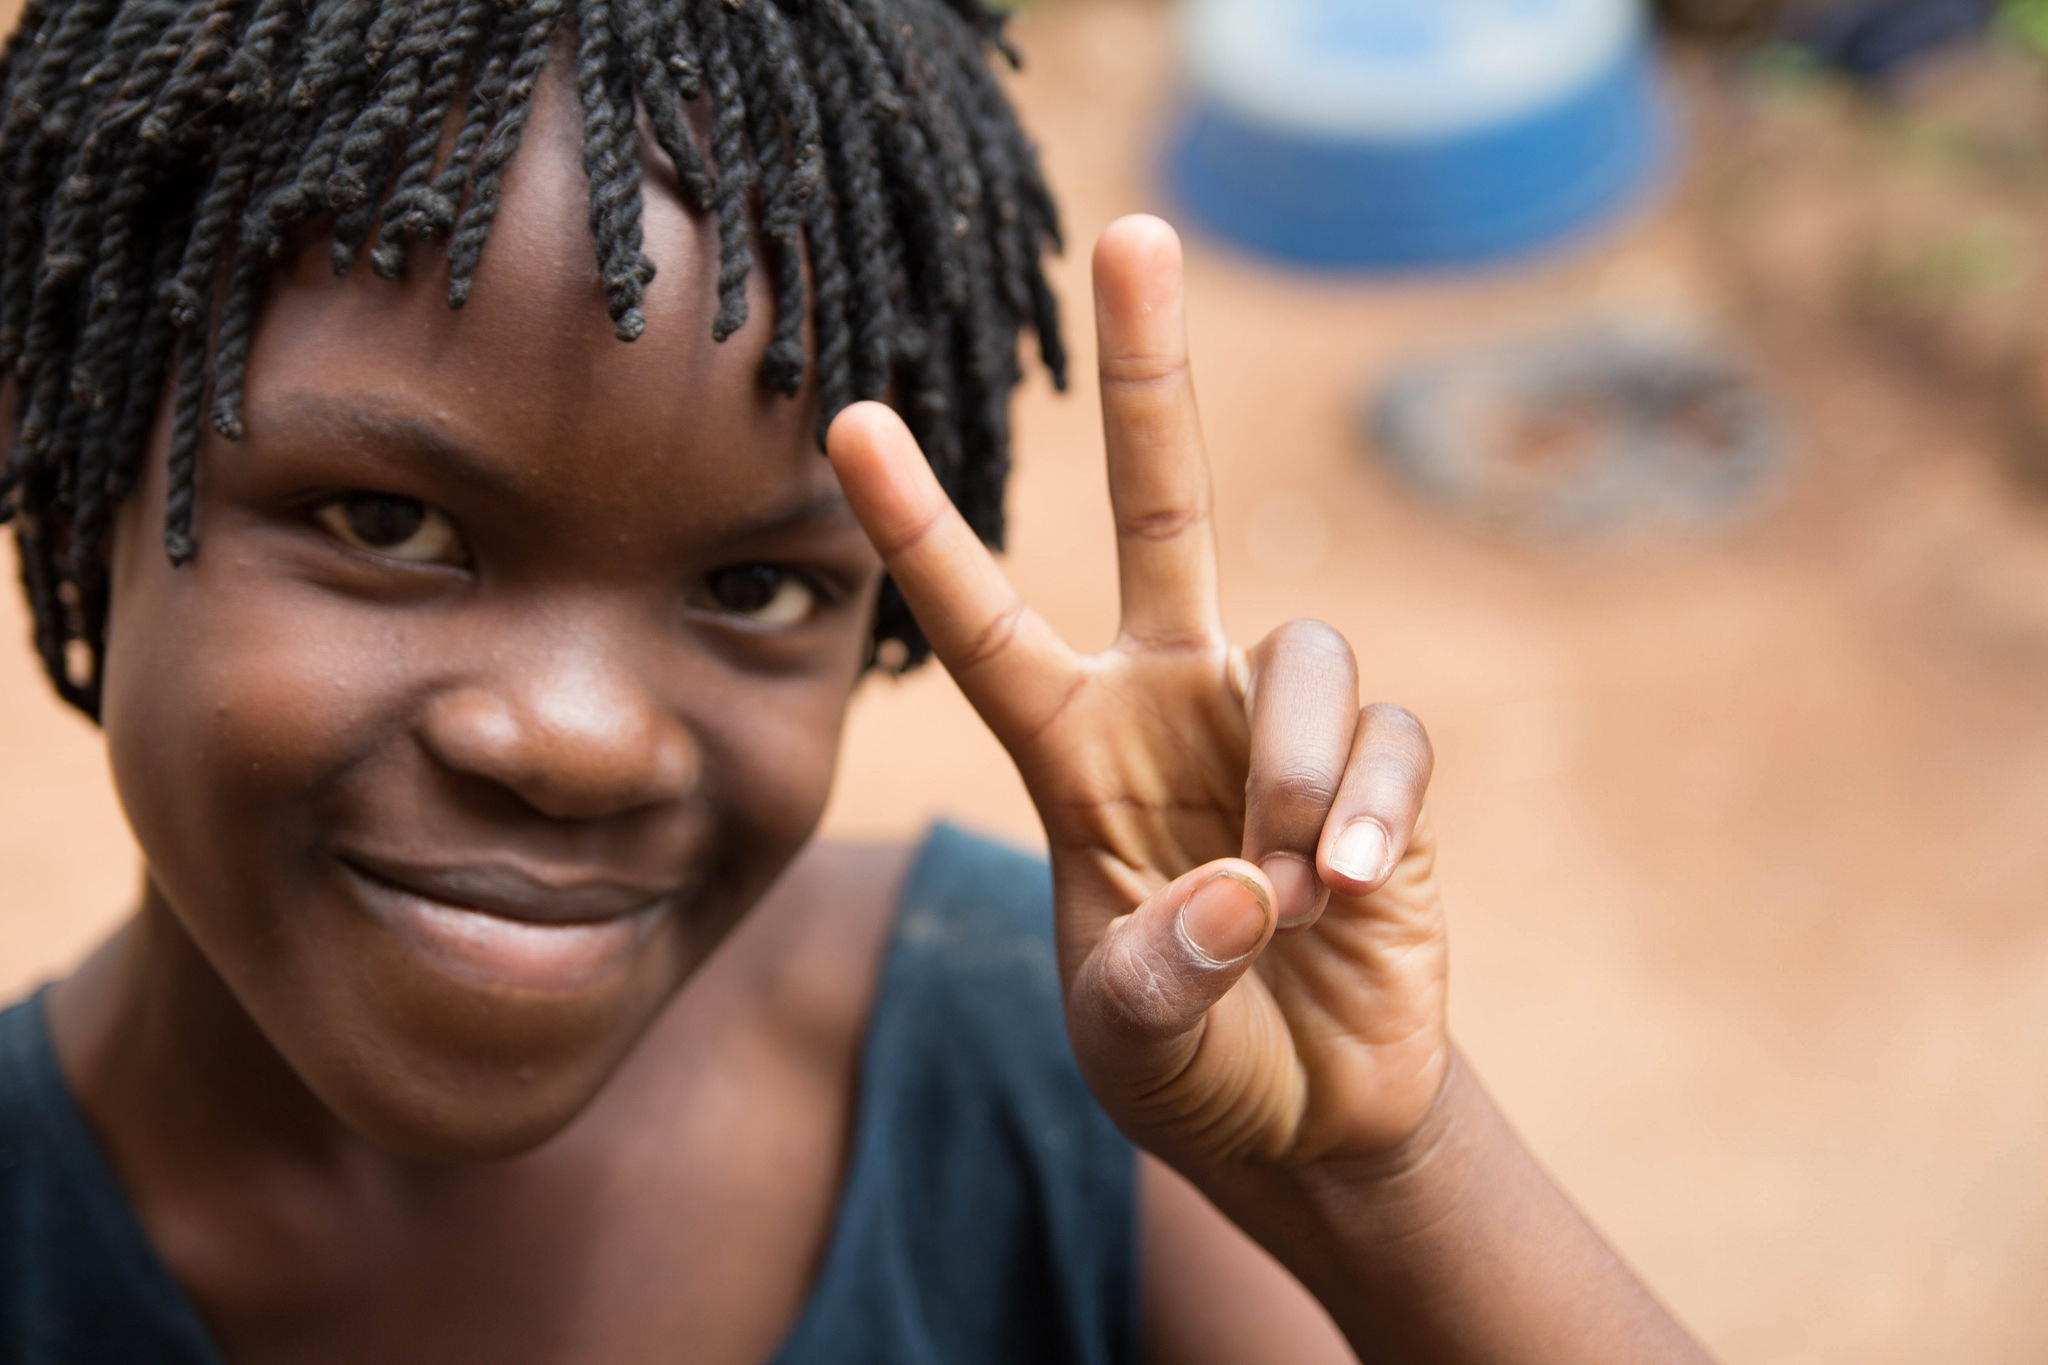 Joy is the fourth of the Kimbugwe children, and definitely lives up to her name.